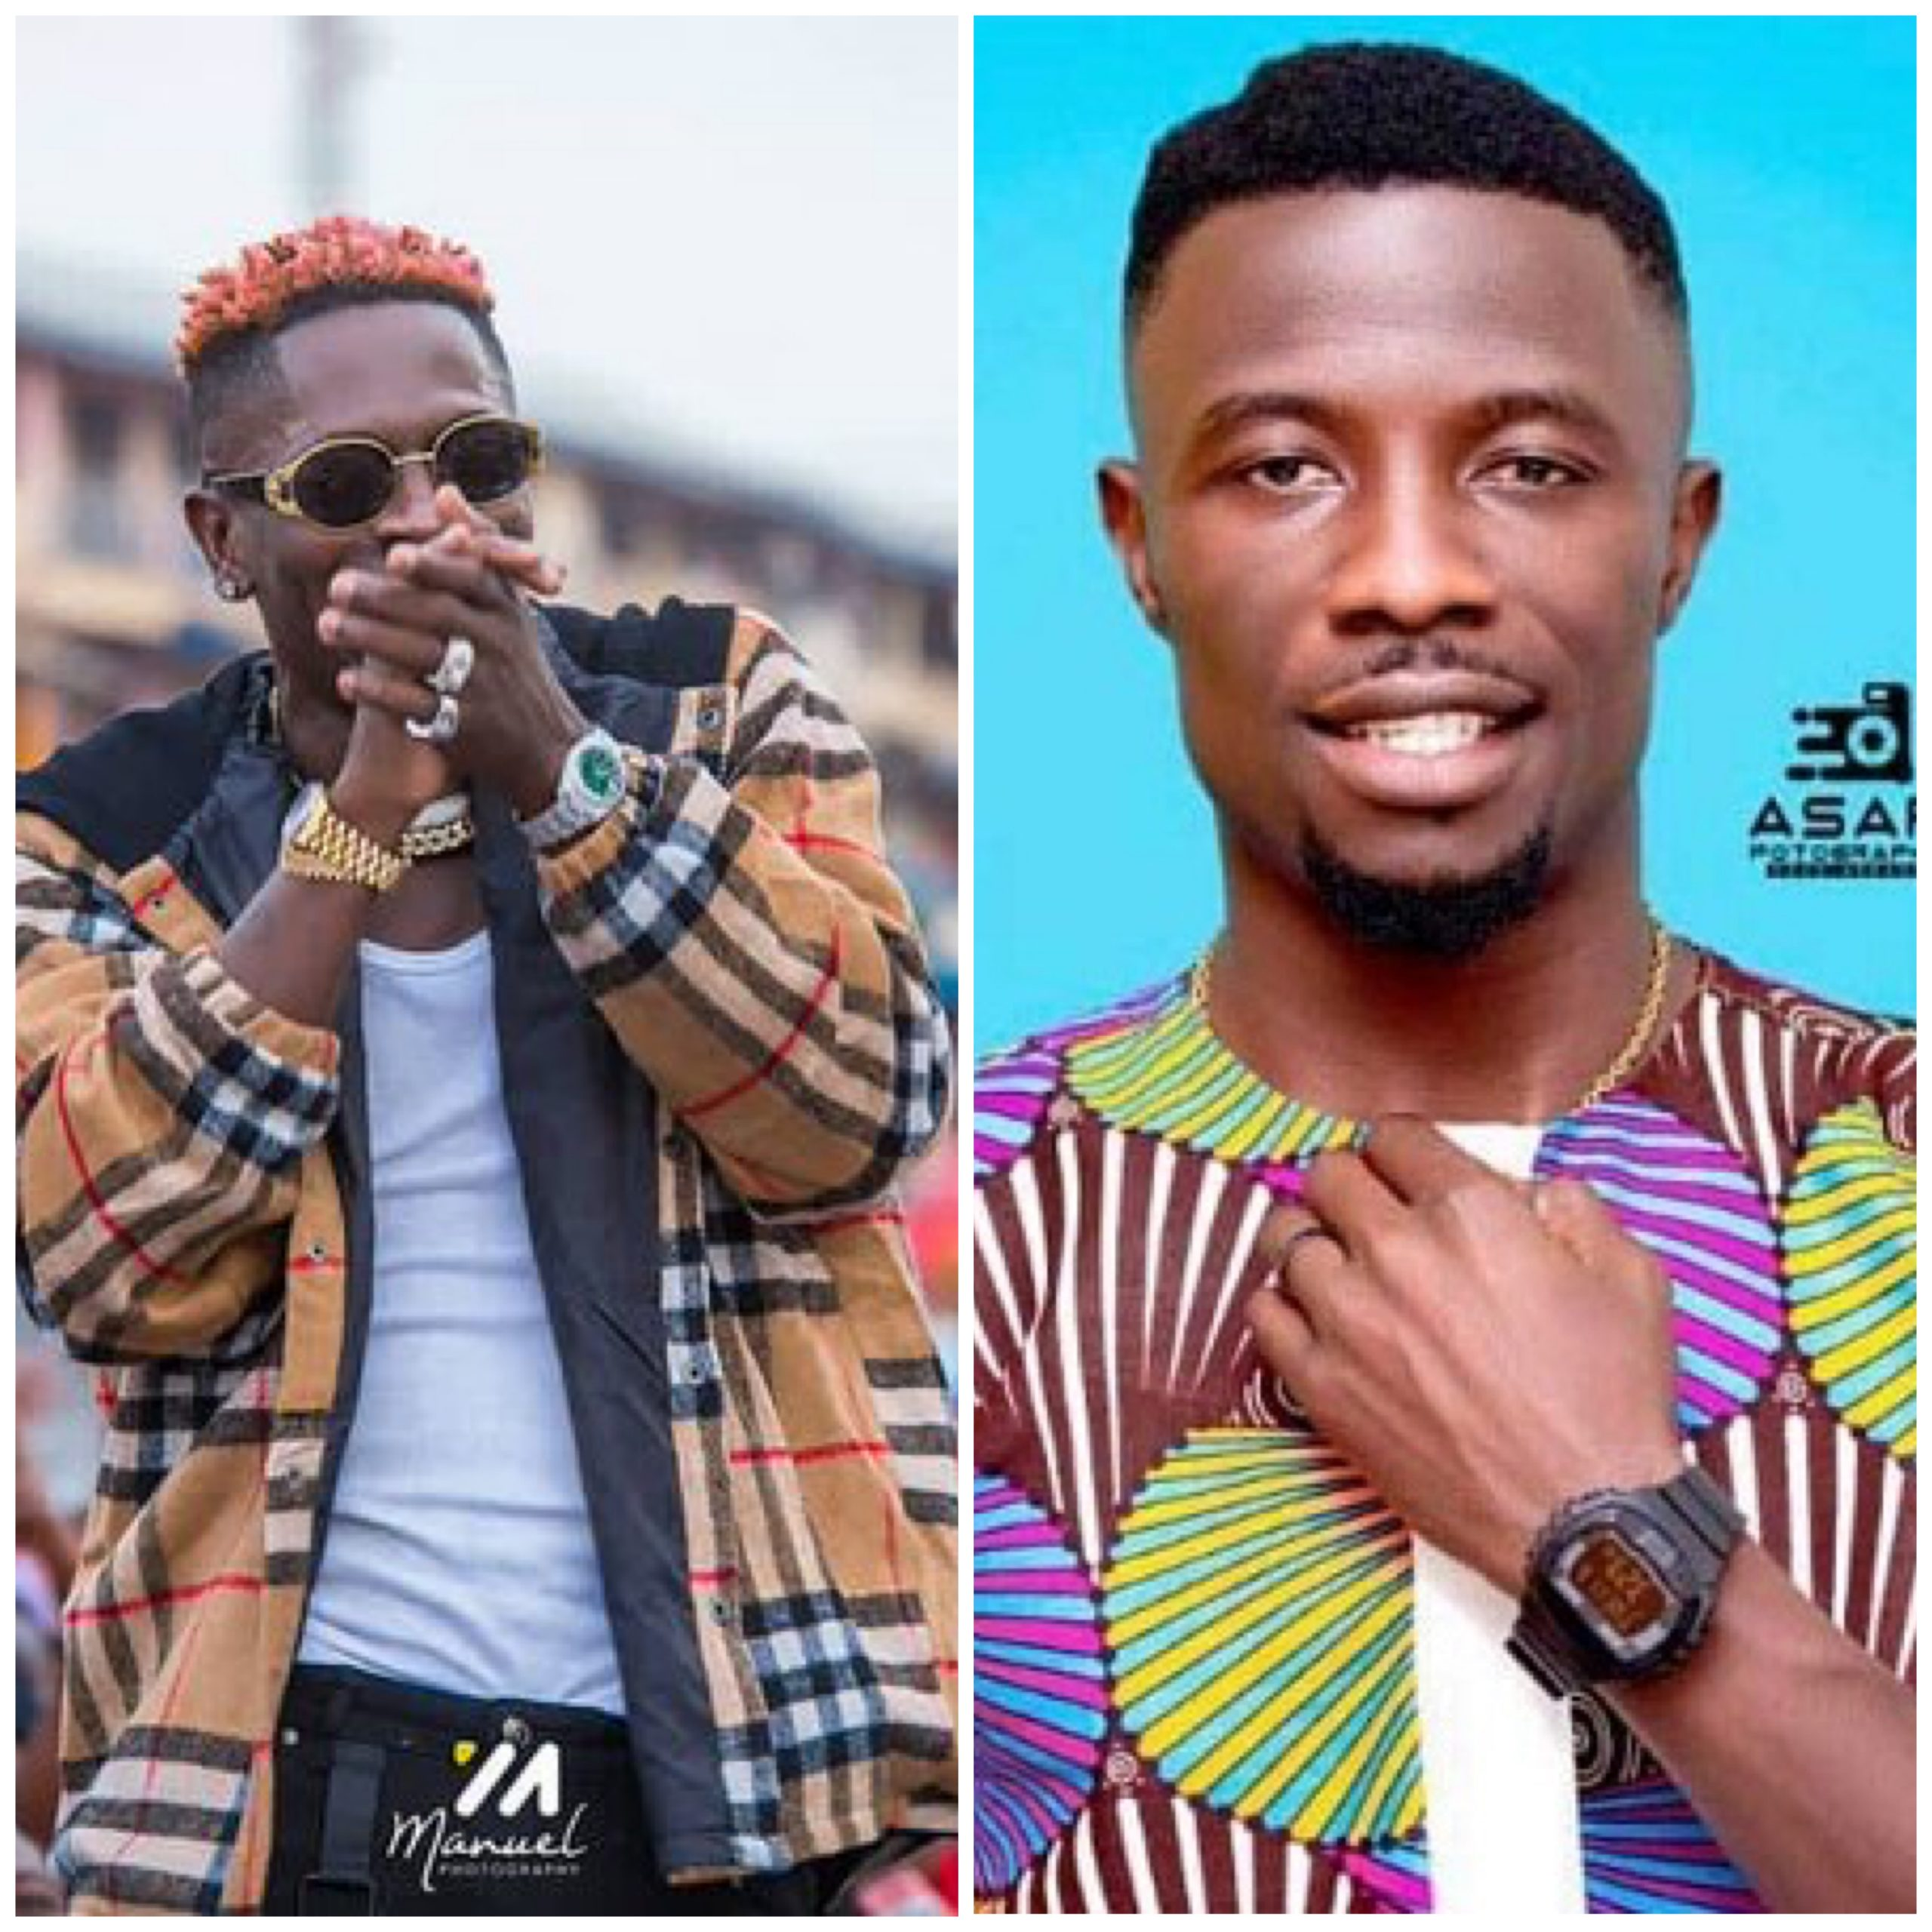 I'm Very Happy And I Greatly Thank Shatta Wale For Brightening The Face Of Kumasi With This Project, He Deserve To Be Praise - Kwaku Manu